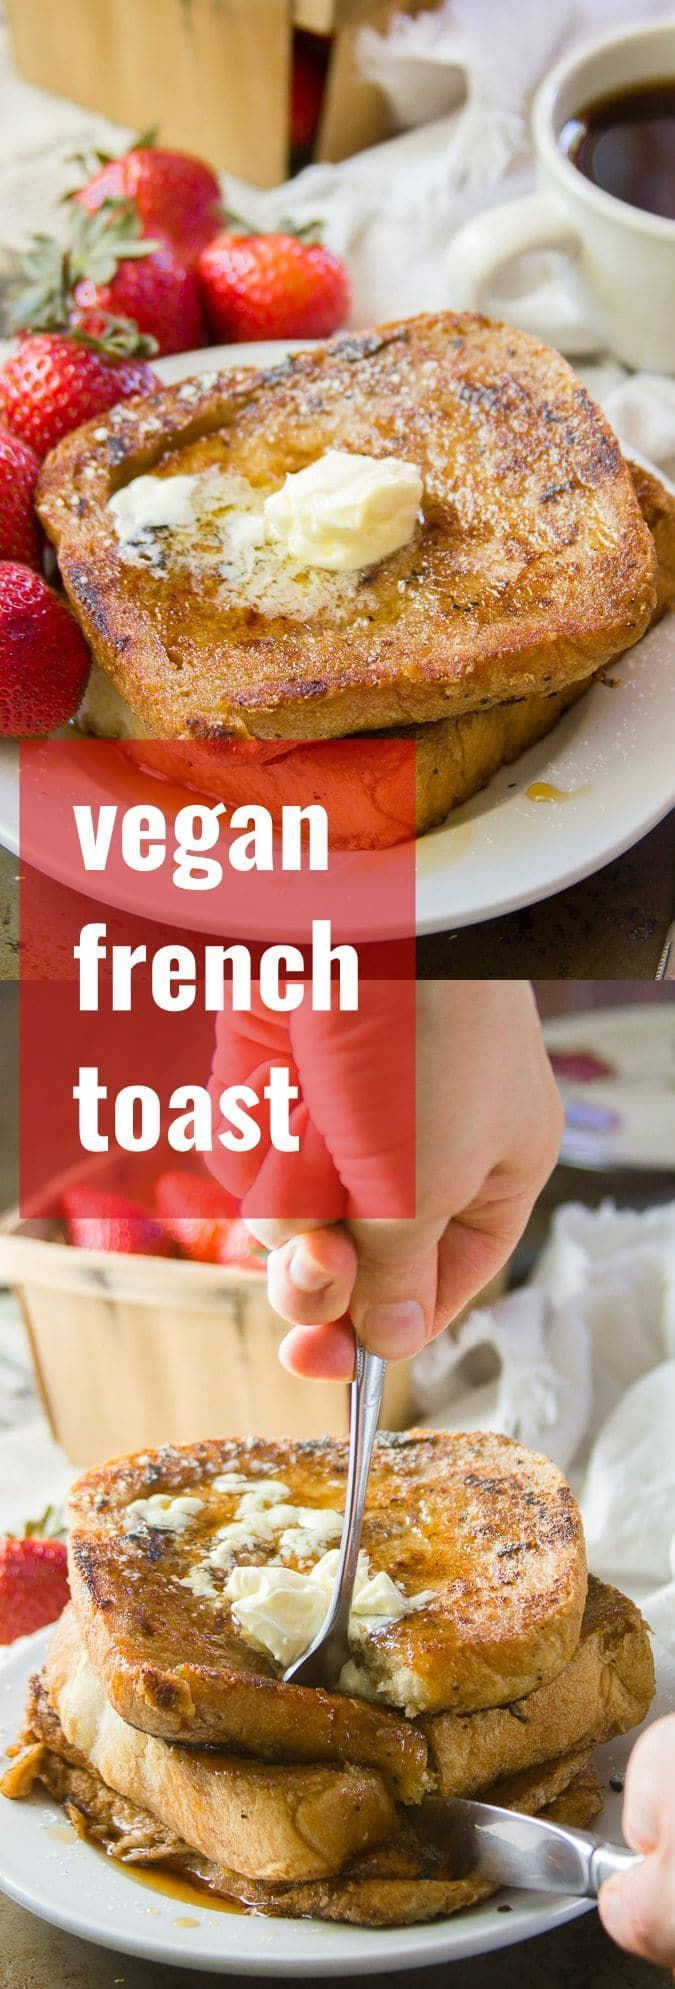 You can't beat a classic! This vegan French toast tastes like the stuff you grew up eating, but is made with absolutely no eggs or dairy. Grab some maple syrup and dig in! can't beat a classic! This vegan French toast tastes like the stuff you grew up eating, but is made with absolutely no eggs or dairy. Grab some maple syrup and dig in!